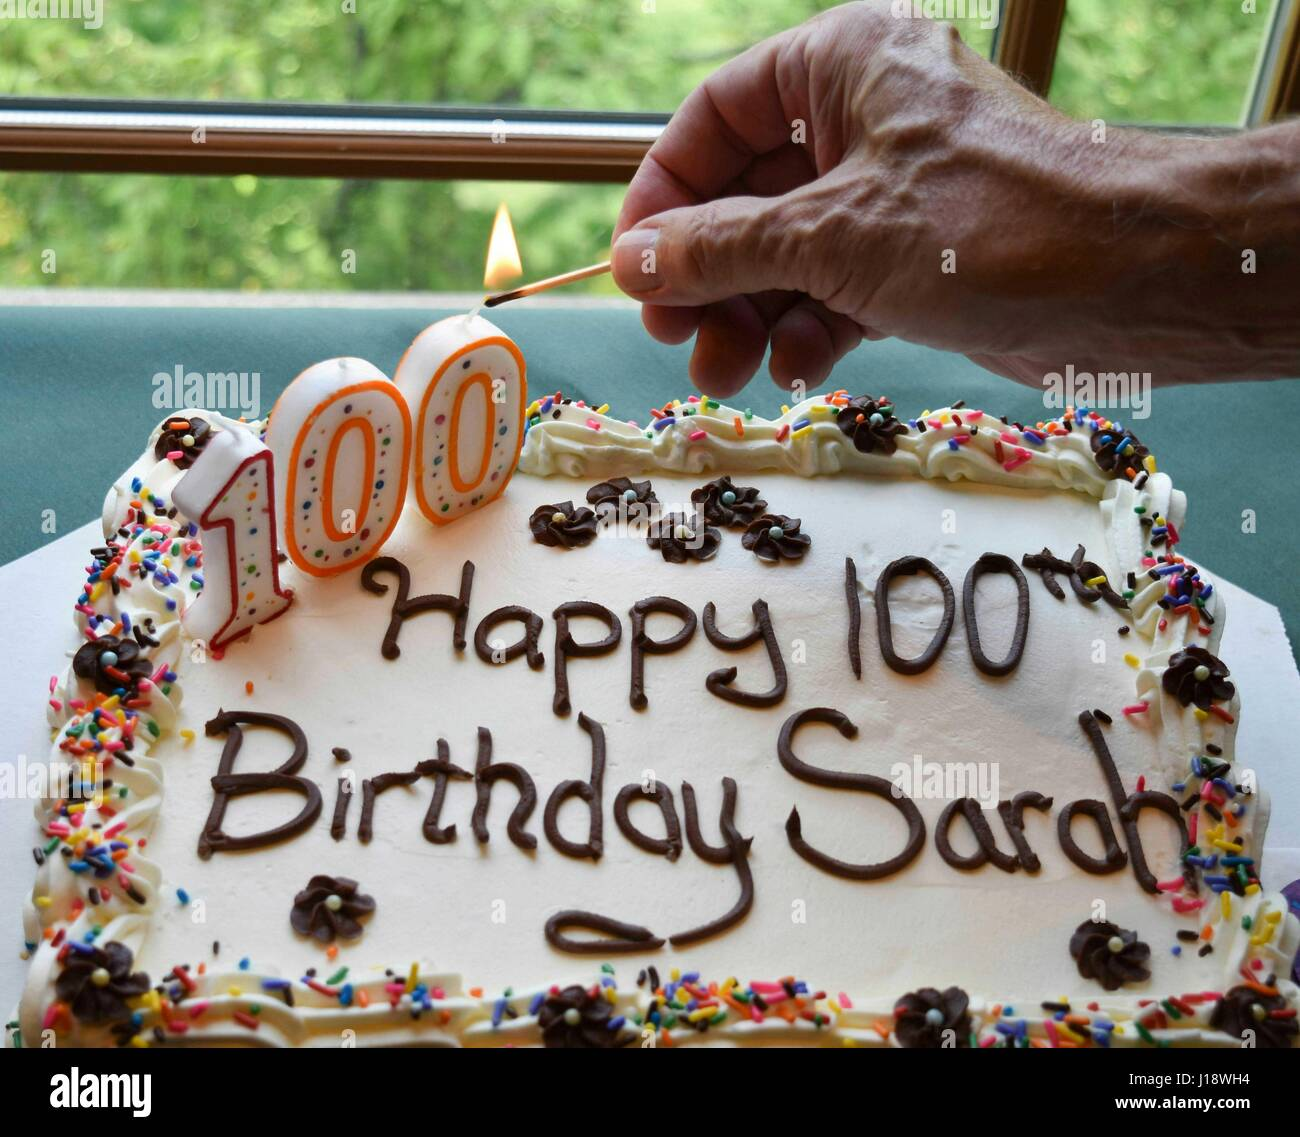 Hand Lighting A Candle On Decorated Cake For 100th Birthday